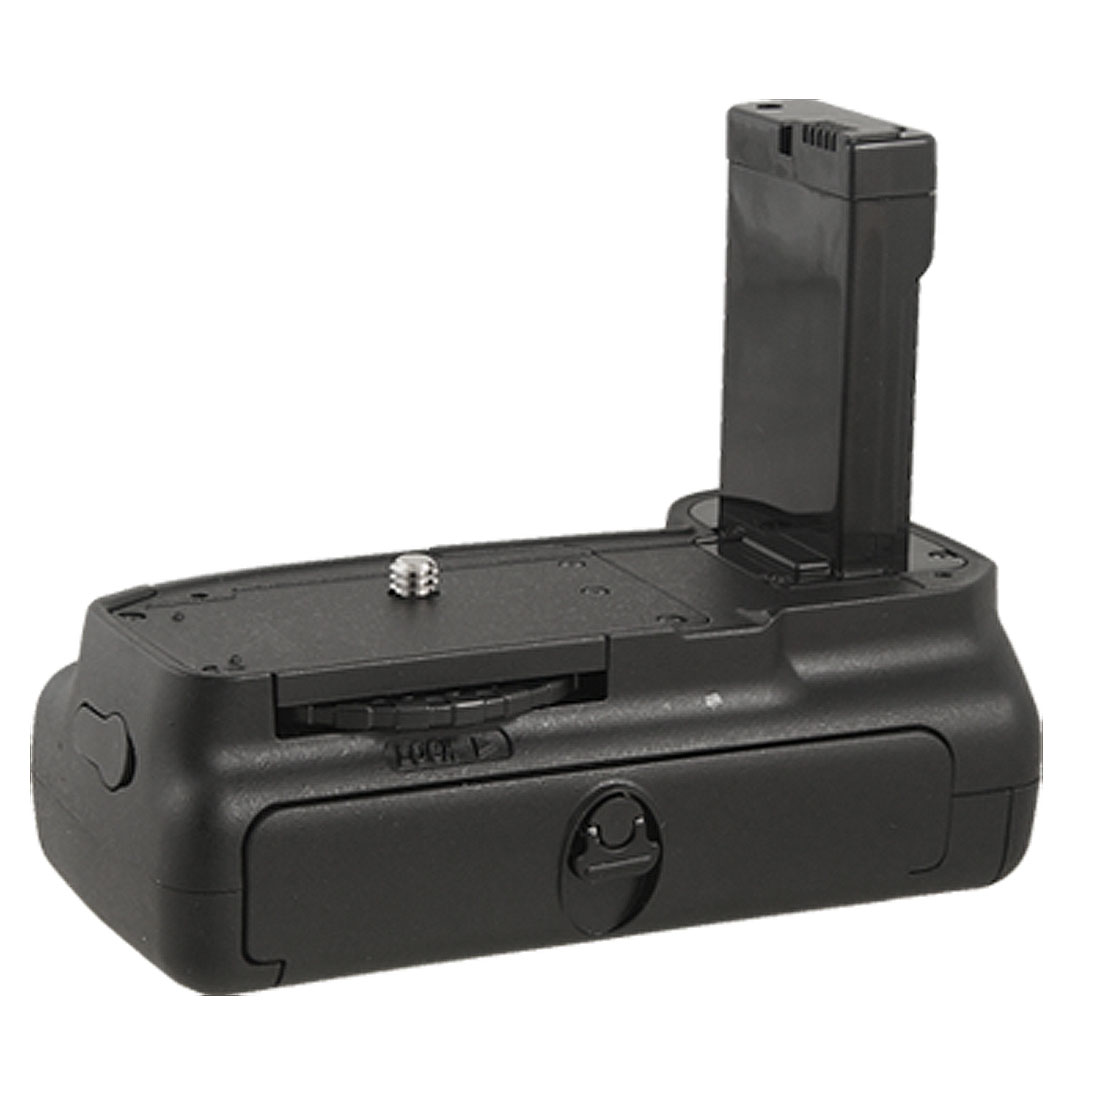 Black Vertical Battery Grip Holder for Nikon D3100 D5100 EN-EL14